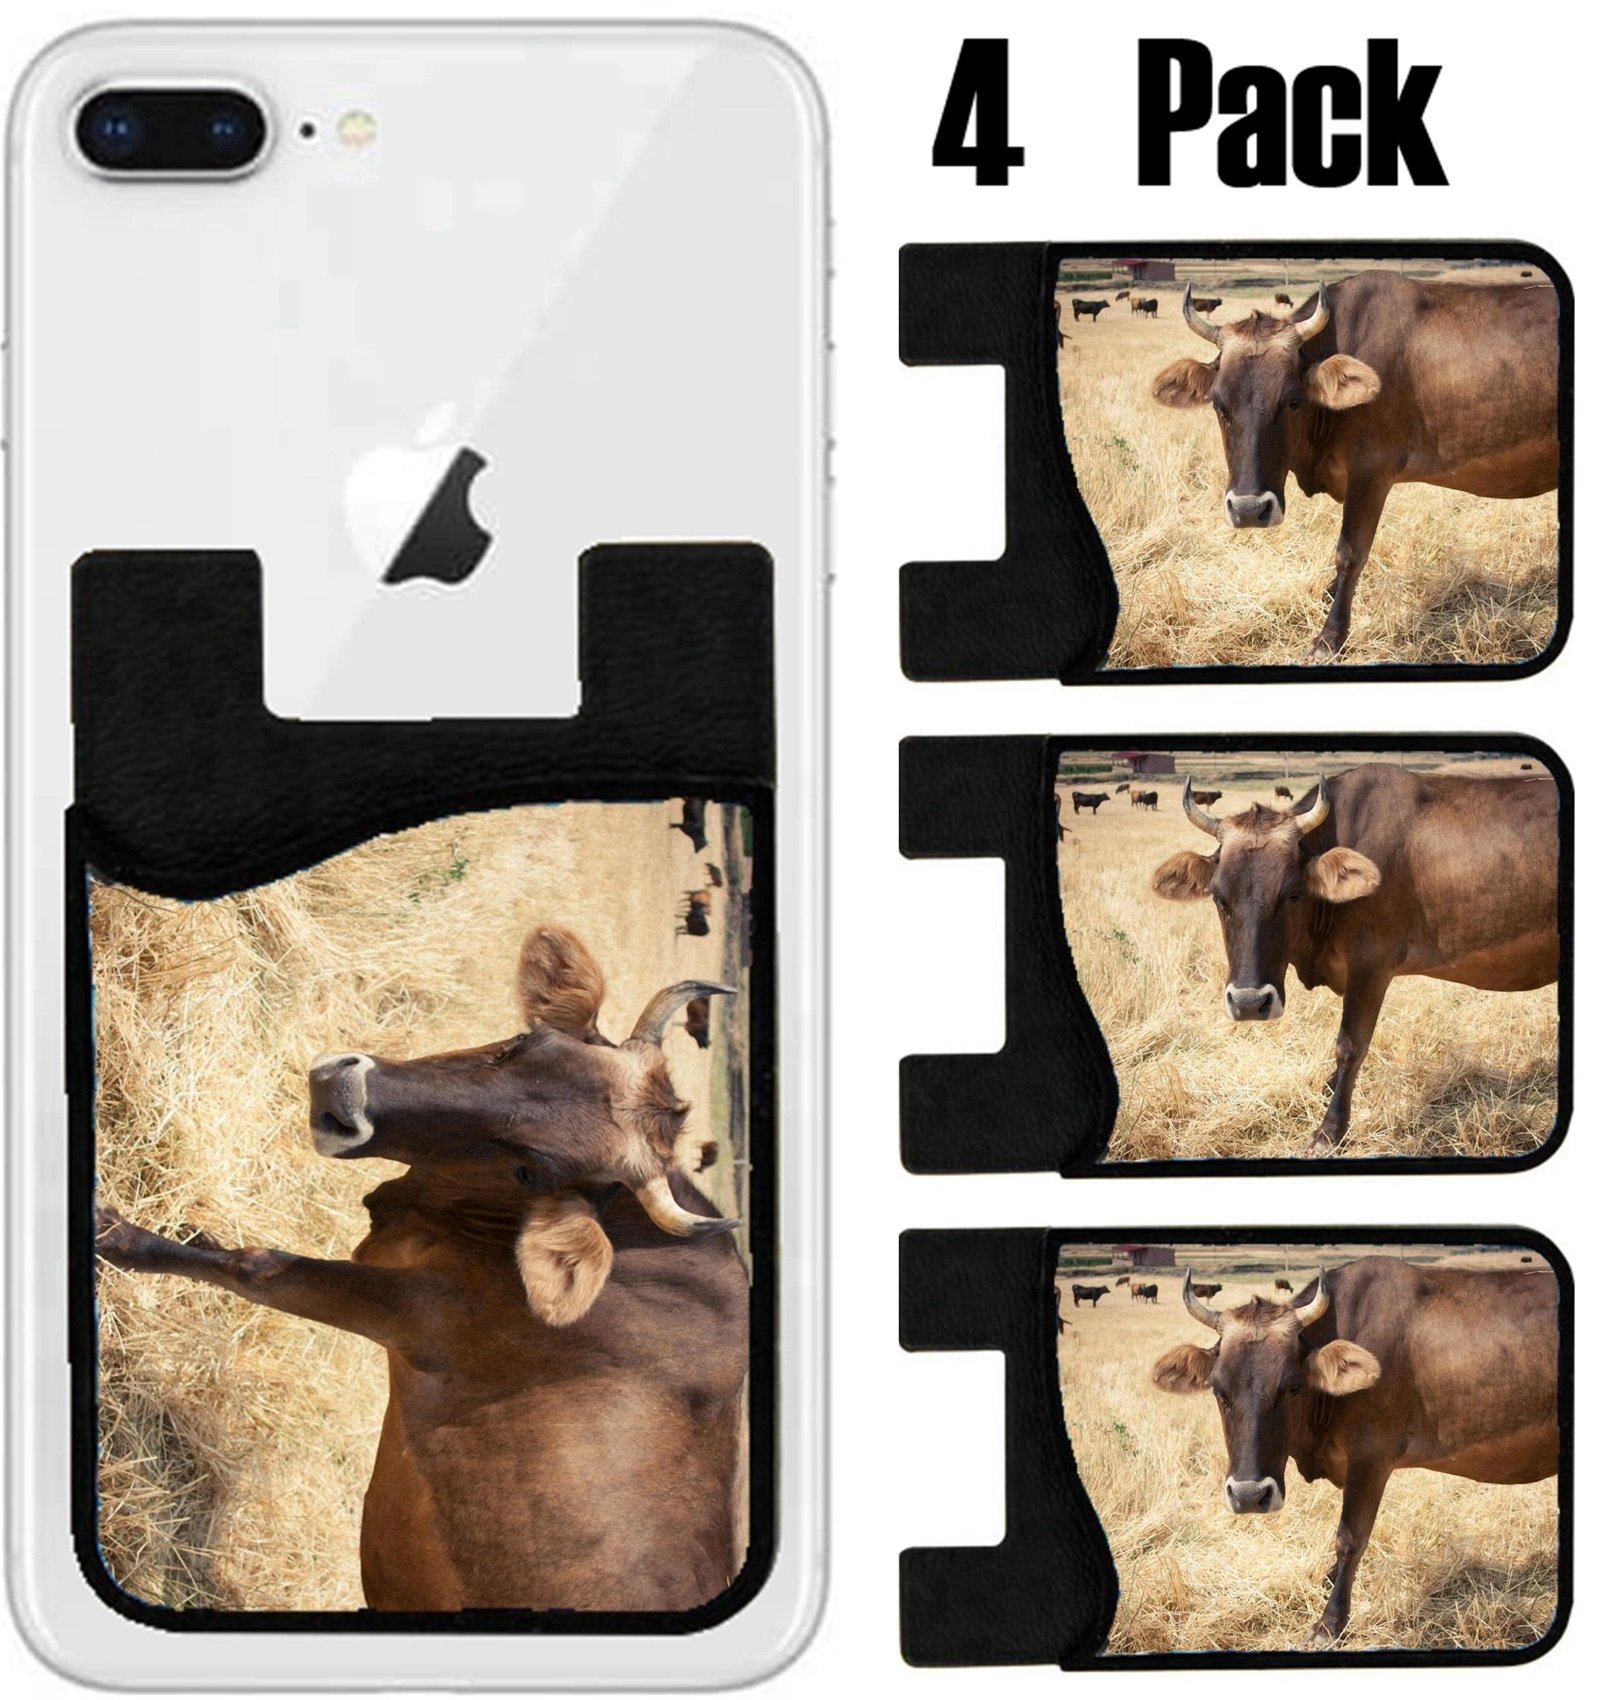 MSD Phone Card holder, sleeve/wallet for iPhone Samsung Android and all smartphones with removable microfiber screen cleaner Silicone card Caddy(4 Pack) IMAGE ID 35597646 Cow standing in a meadow